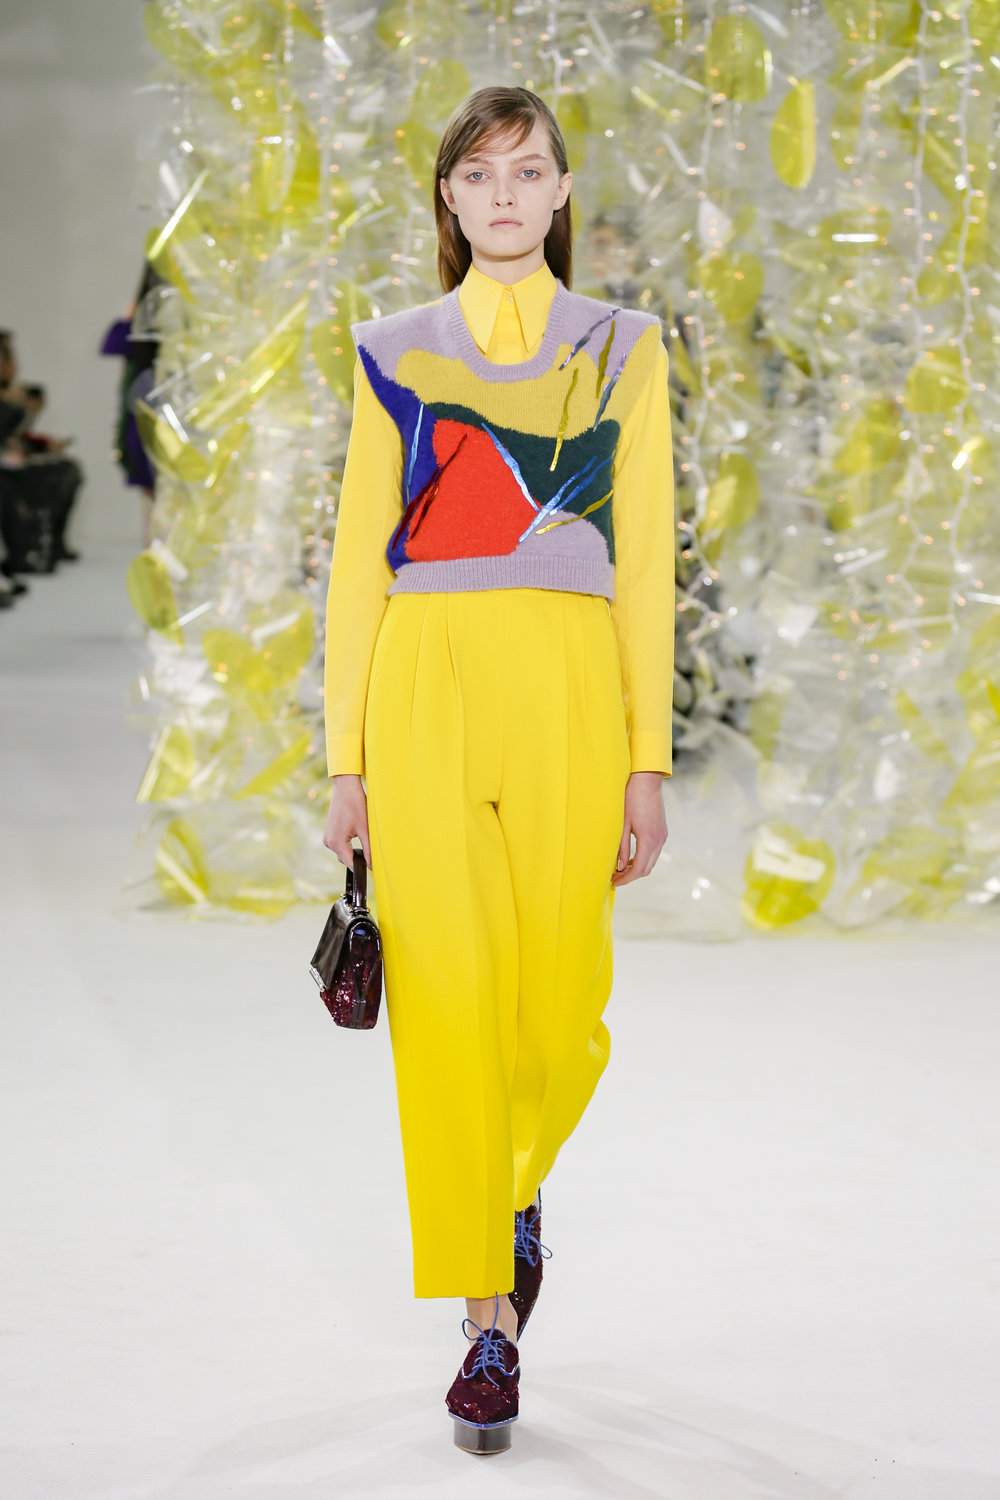 Delpozo's latest collection by Josep Font.